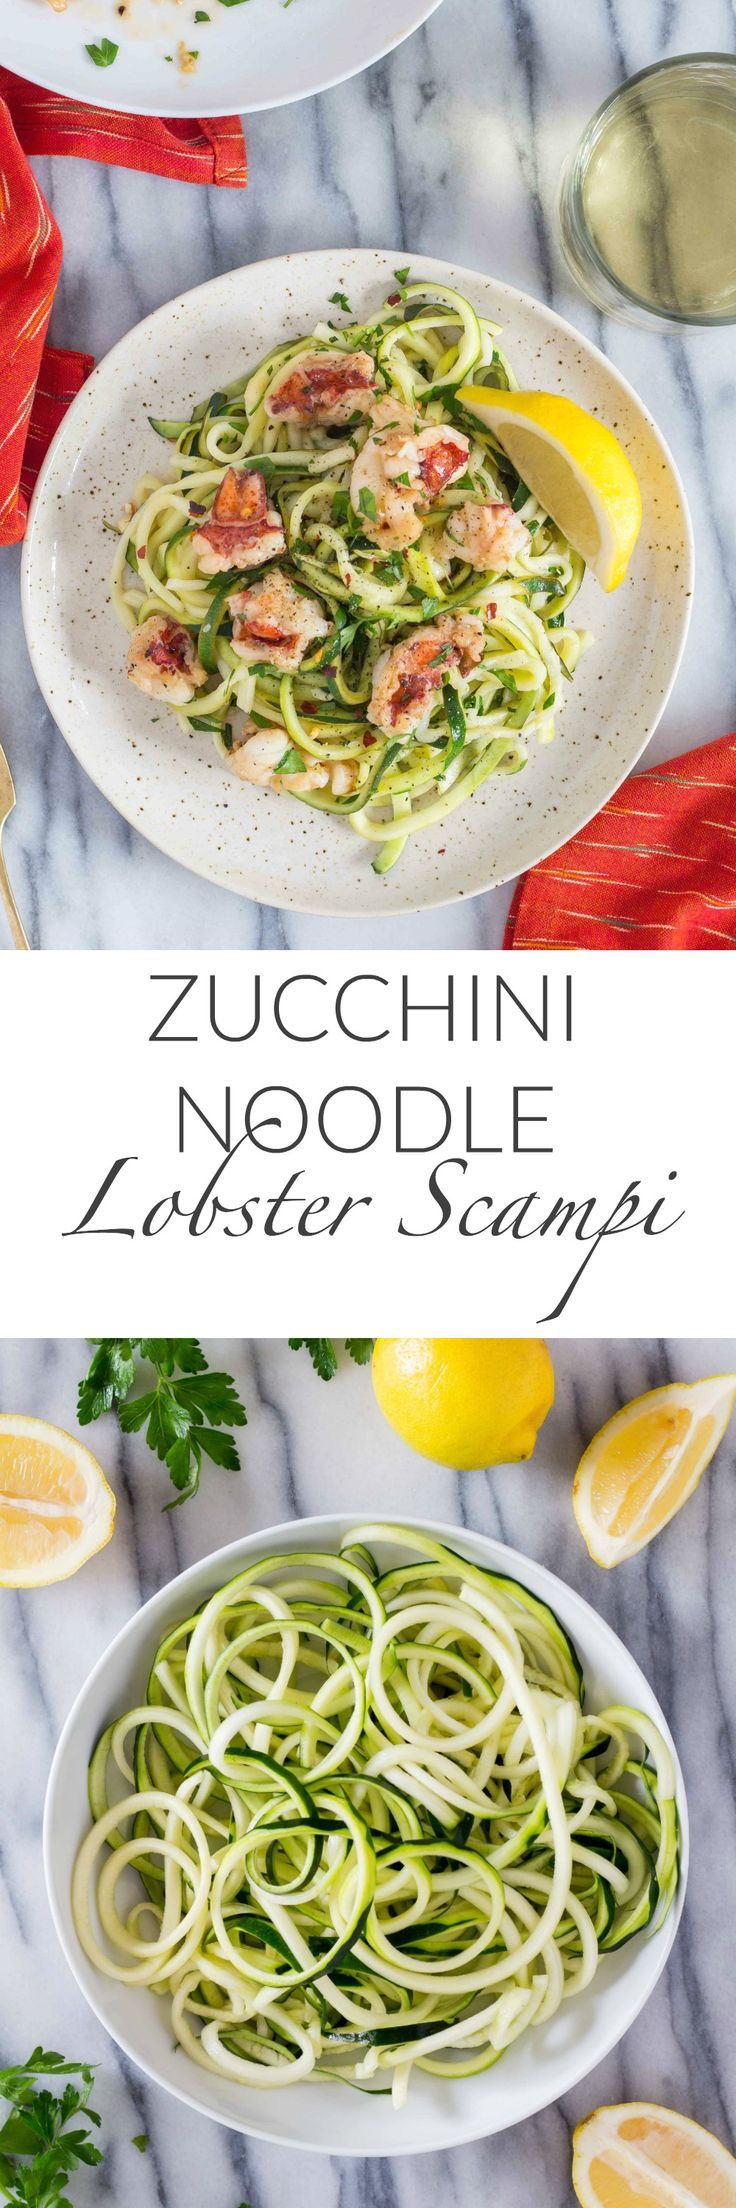 Lobster Scampi with a white wine butter sauce served over healthy zucchini noodles!